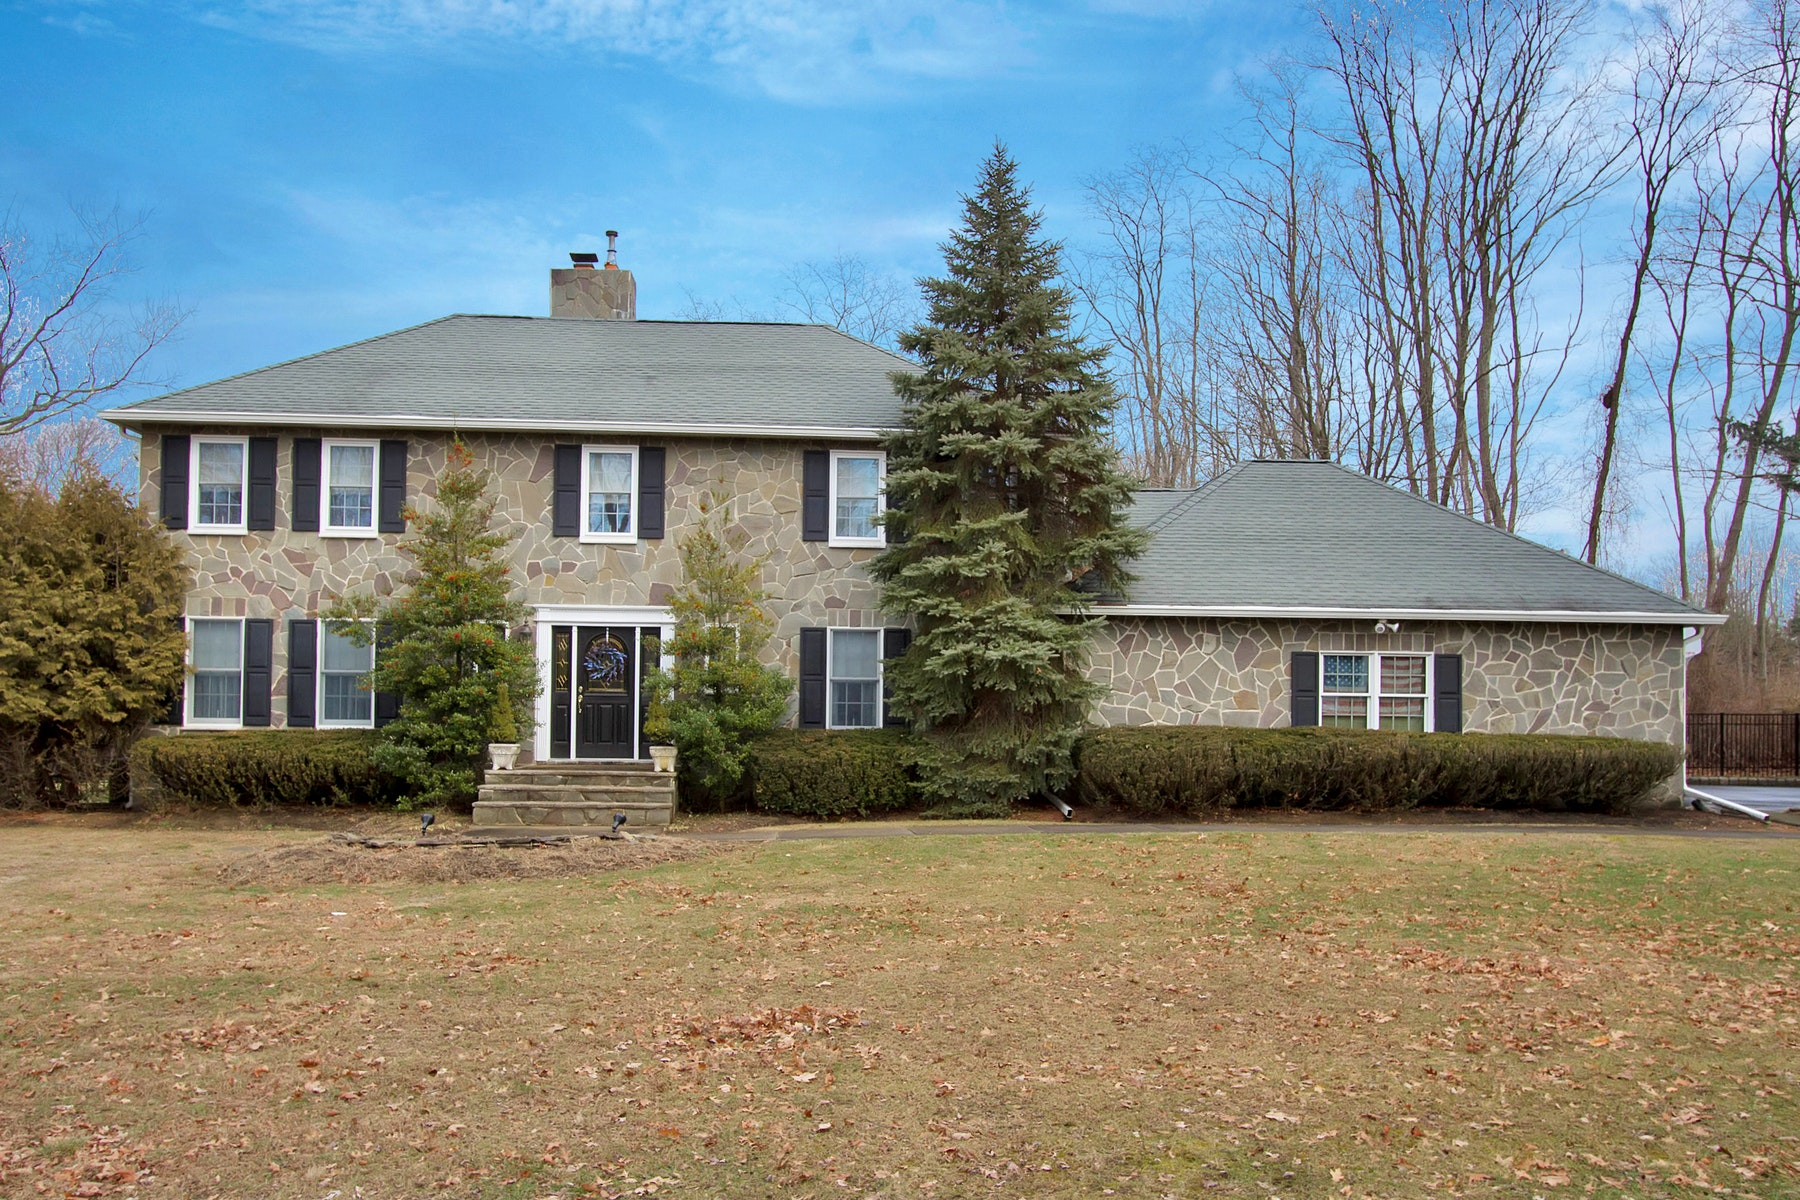 واحد منزل الأسرة للـ Sale في LIVE Traditional 7 Farmgate Drive, Colts Neck, New Jersey, 07722 United States